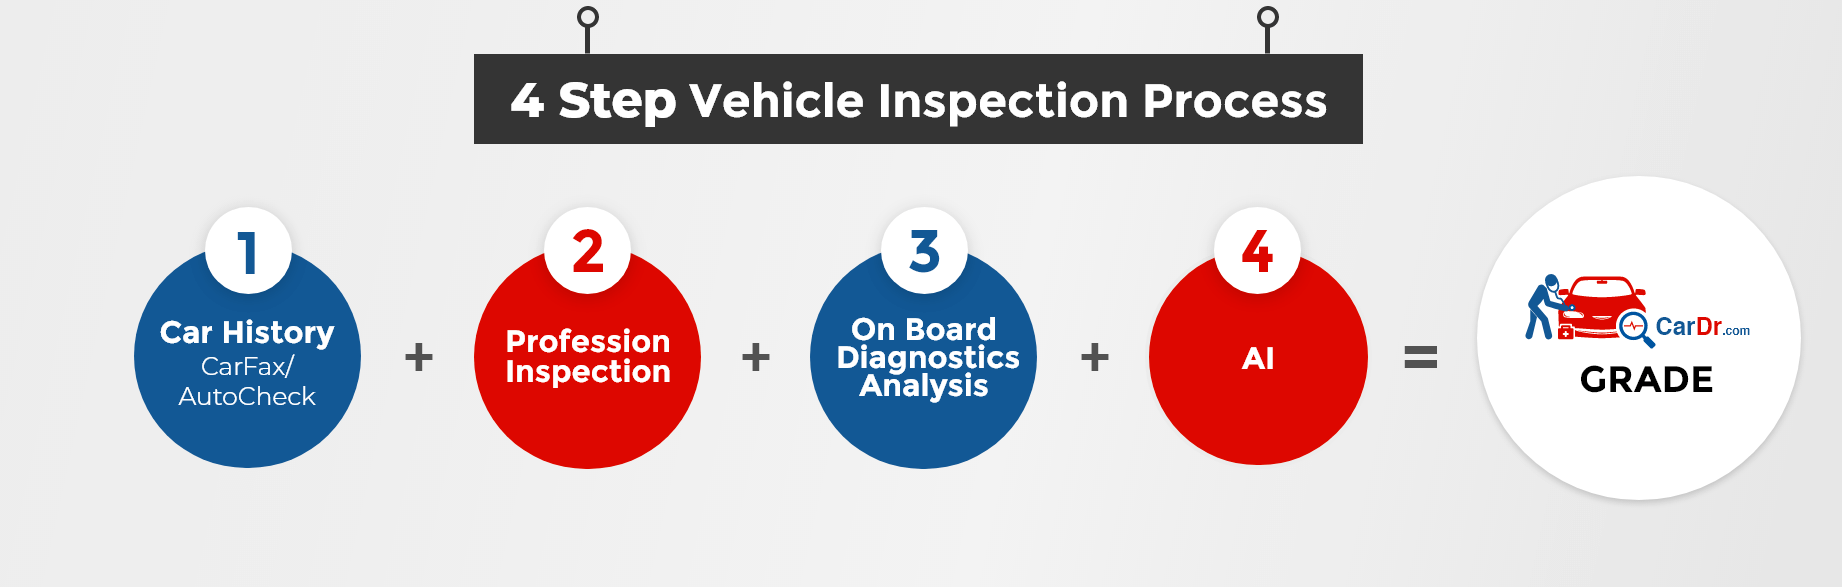 4 Step Vehicle Inspection Process